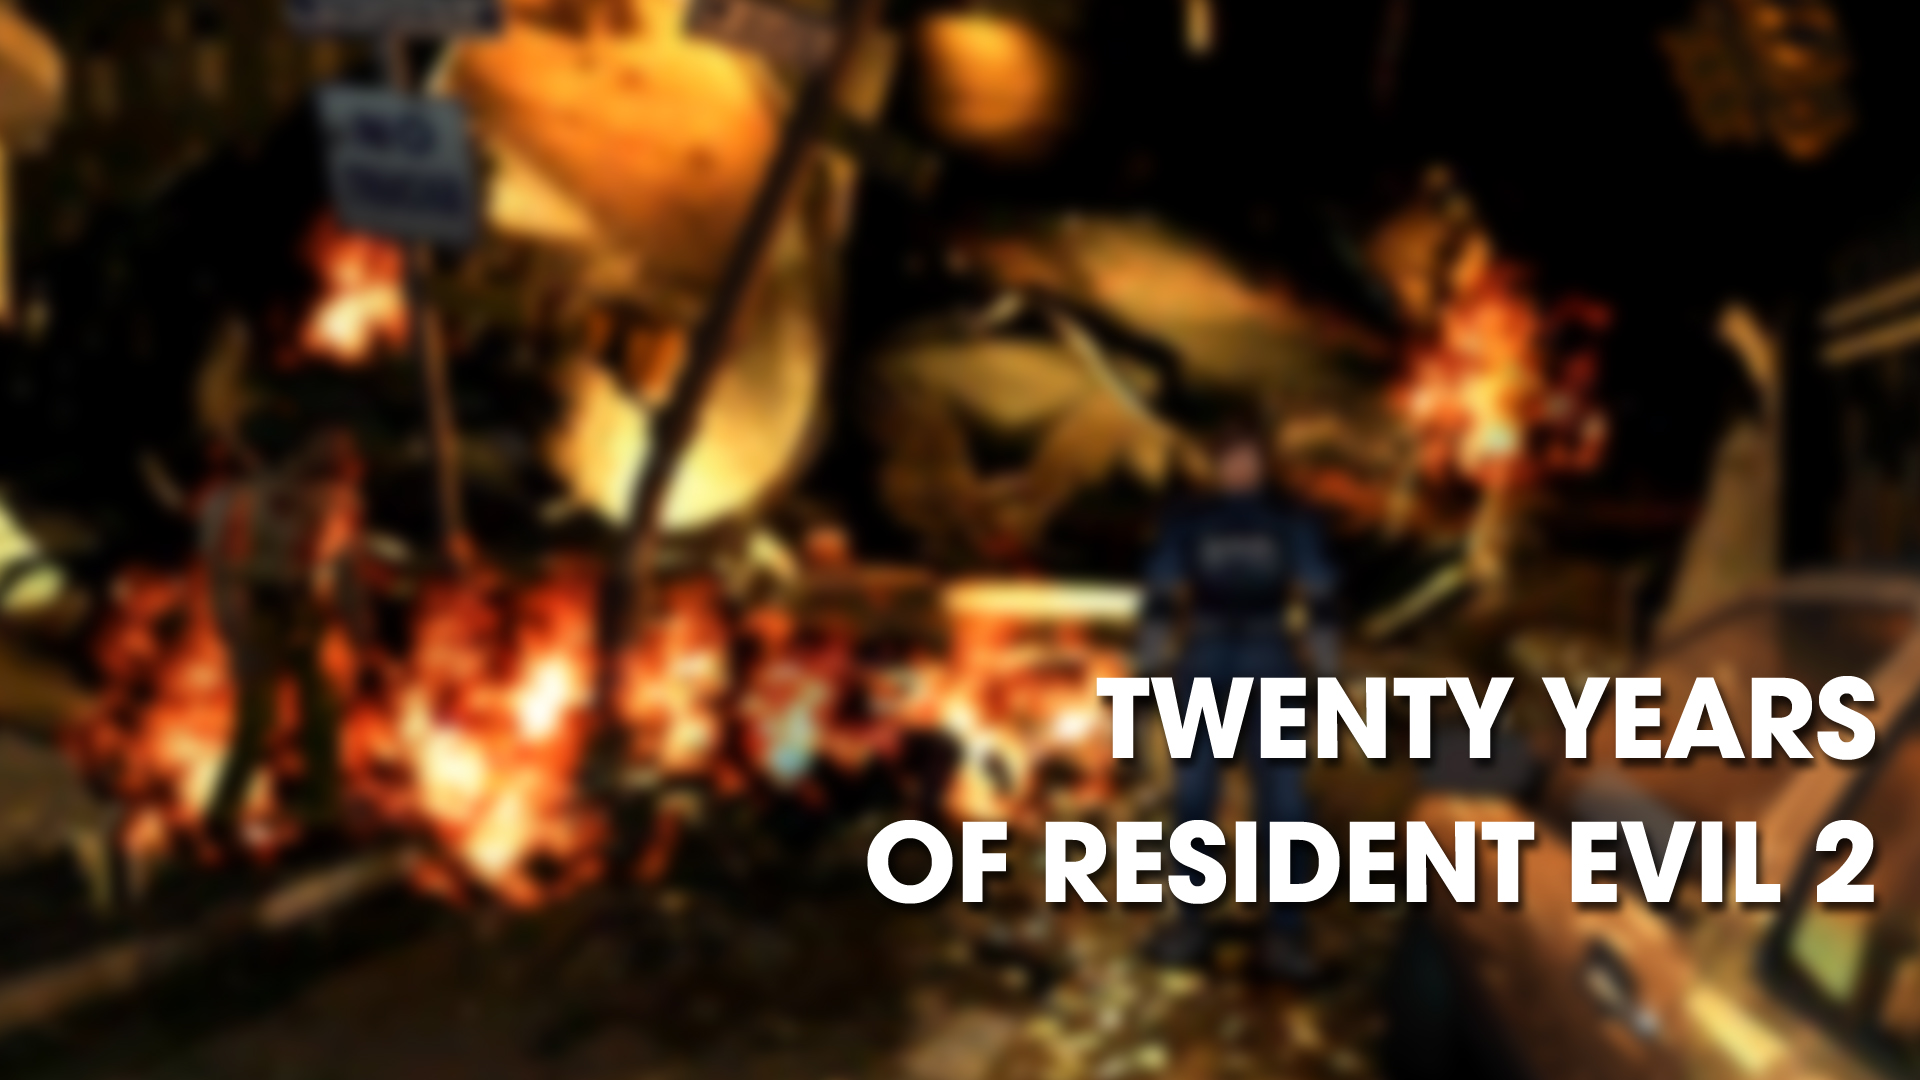 Resident Evil 2 is now twenty years old - and it remains an absolute classic